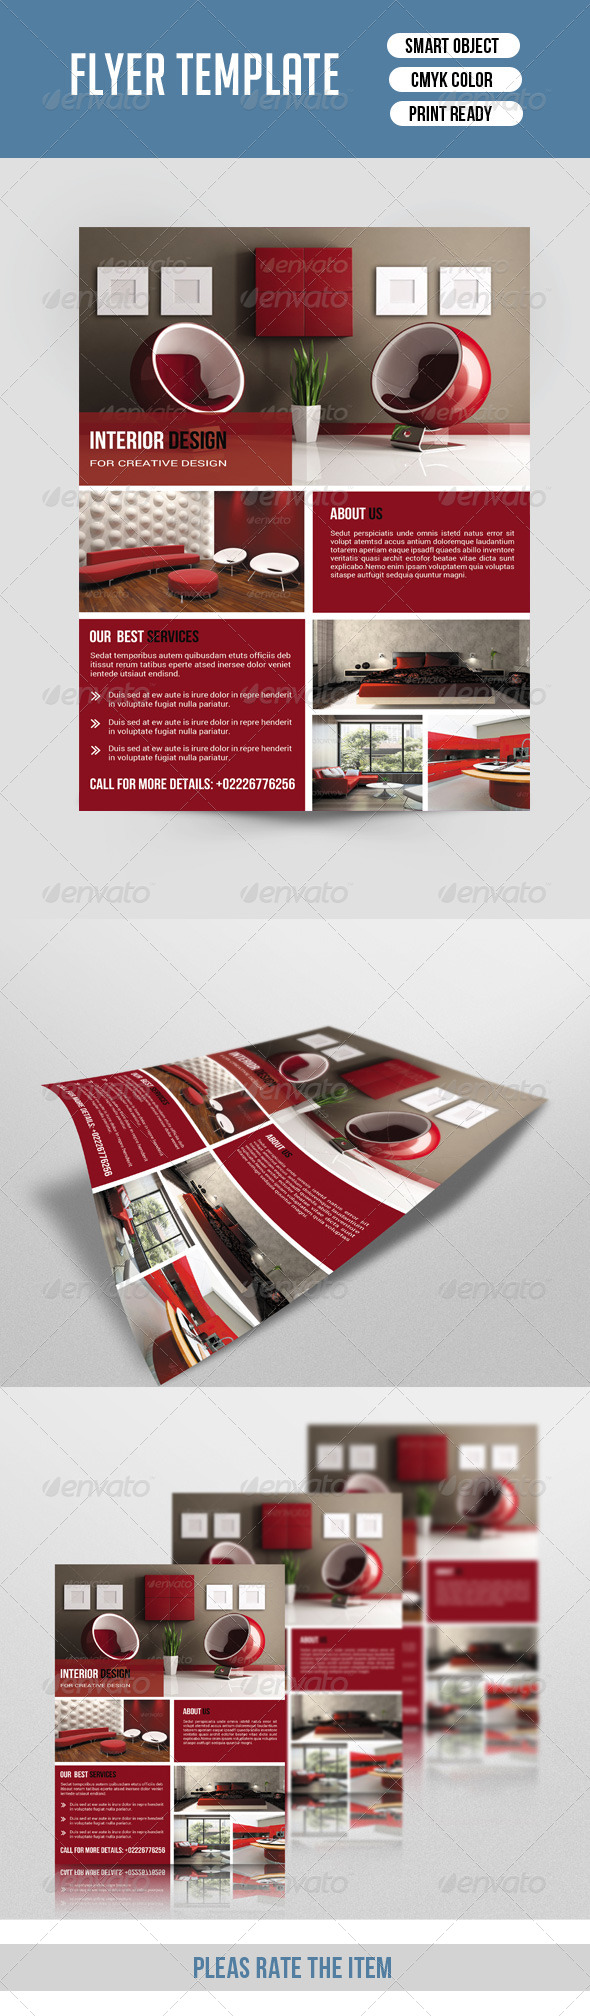 GraphicRiver Flyer Template for Interior Design-V111 8598521